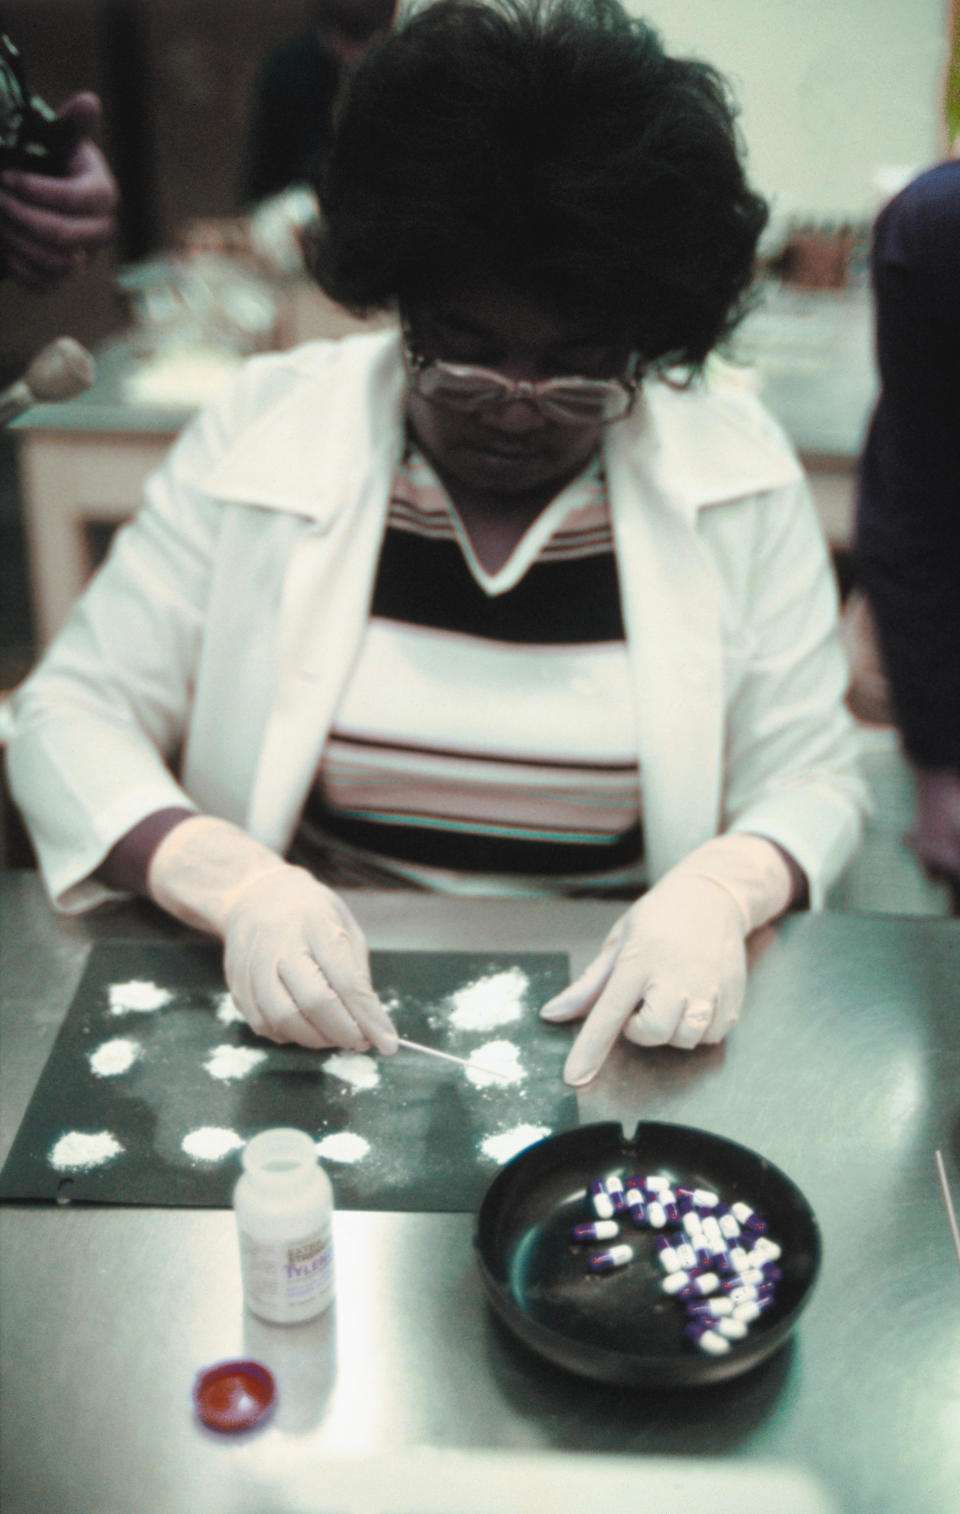 Lab technician testing Tylenol capsules. Source: Getty Images